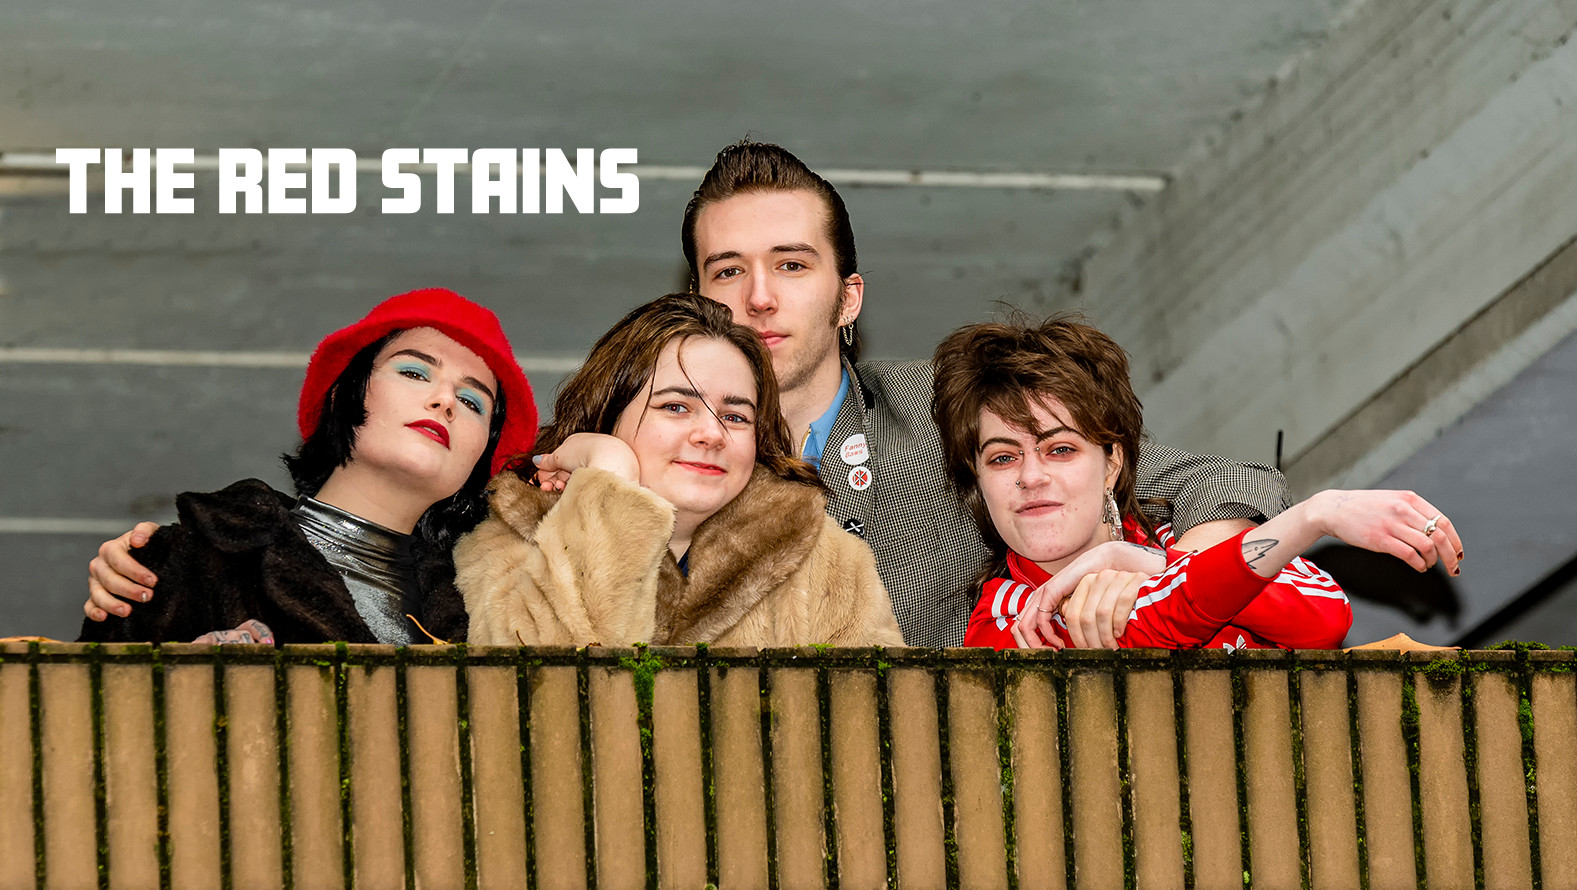 The Red stains (10) Promo.jpg